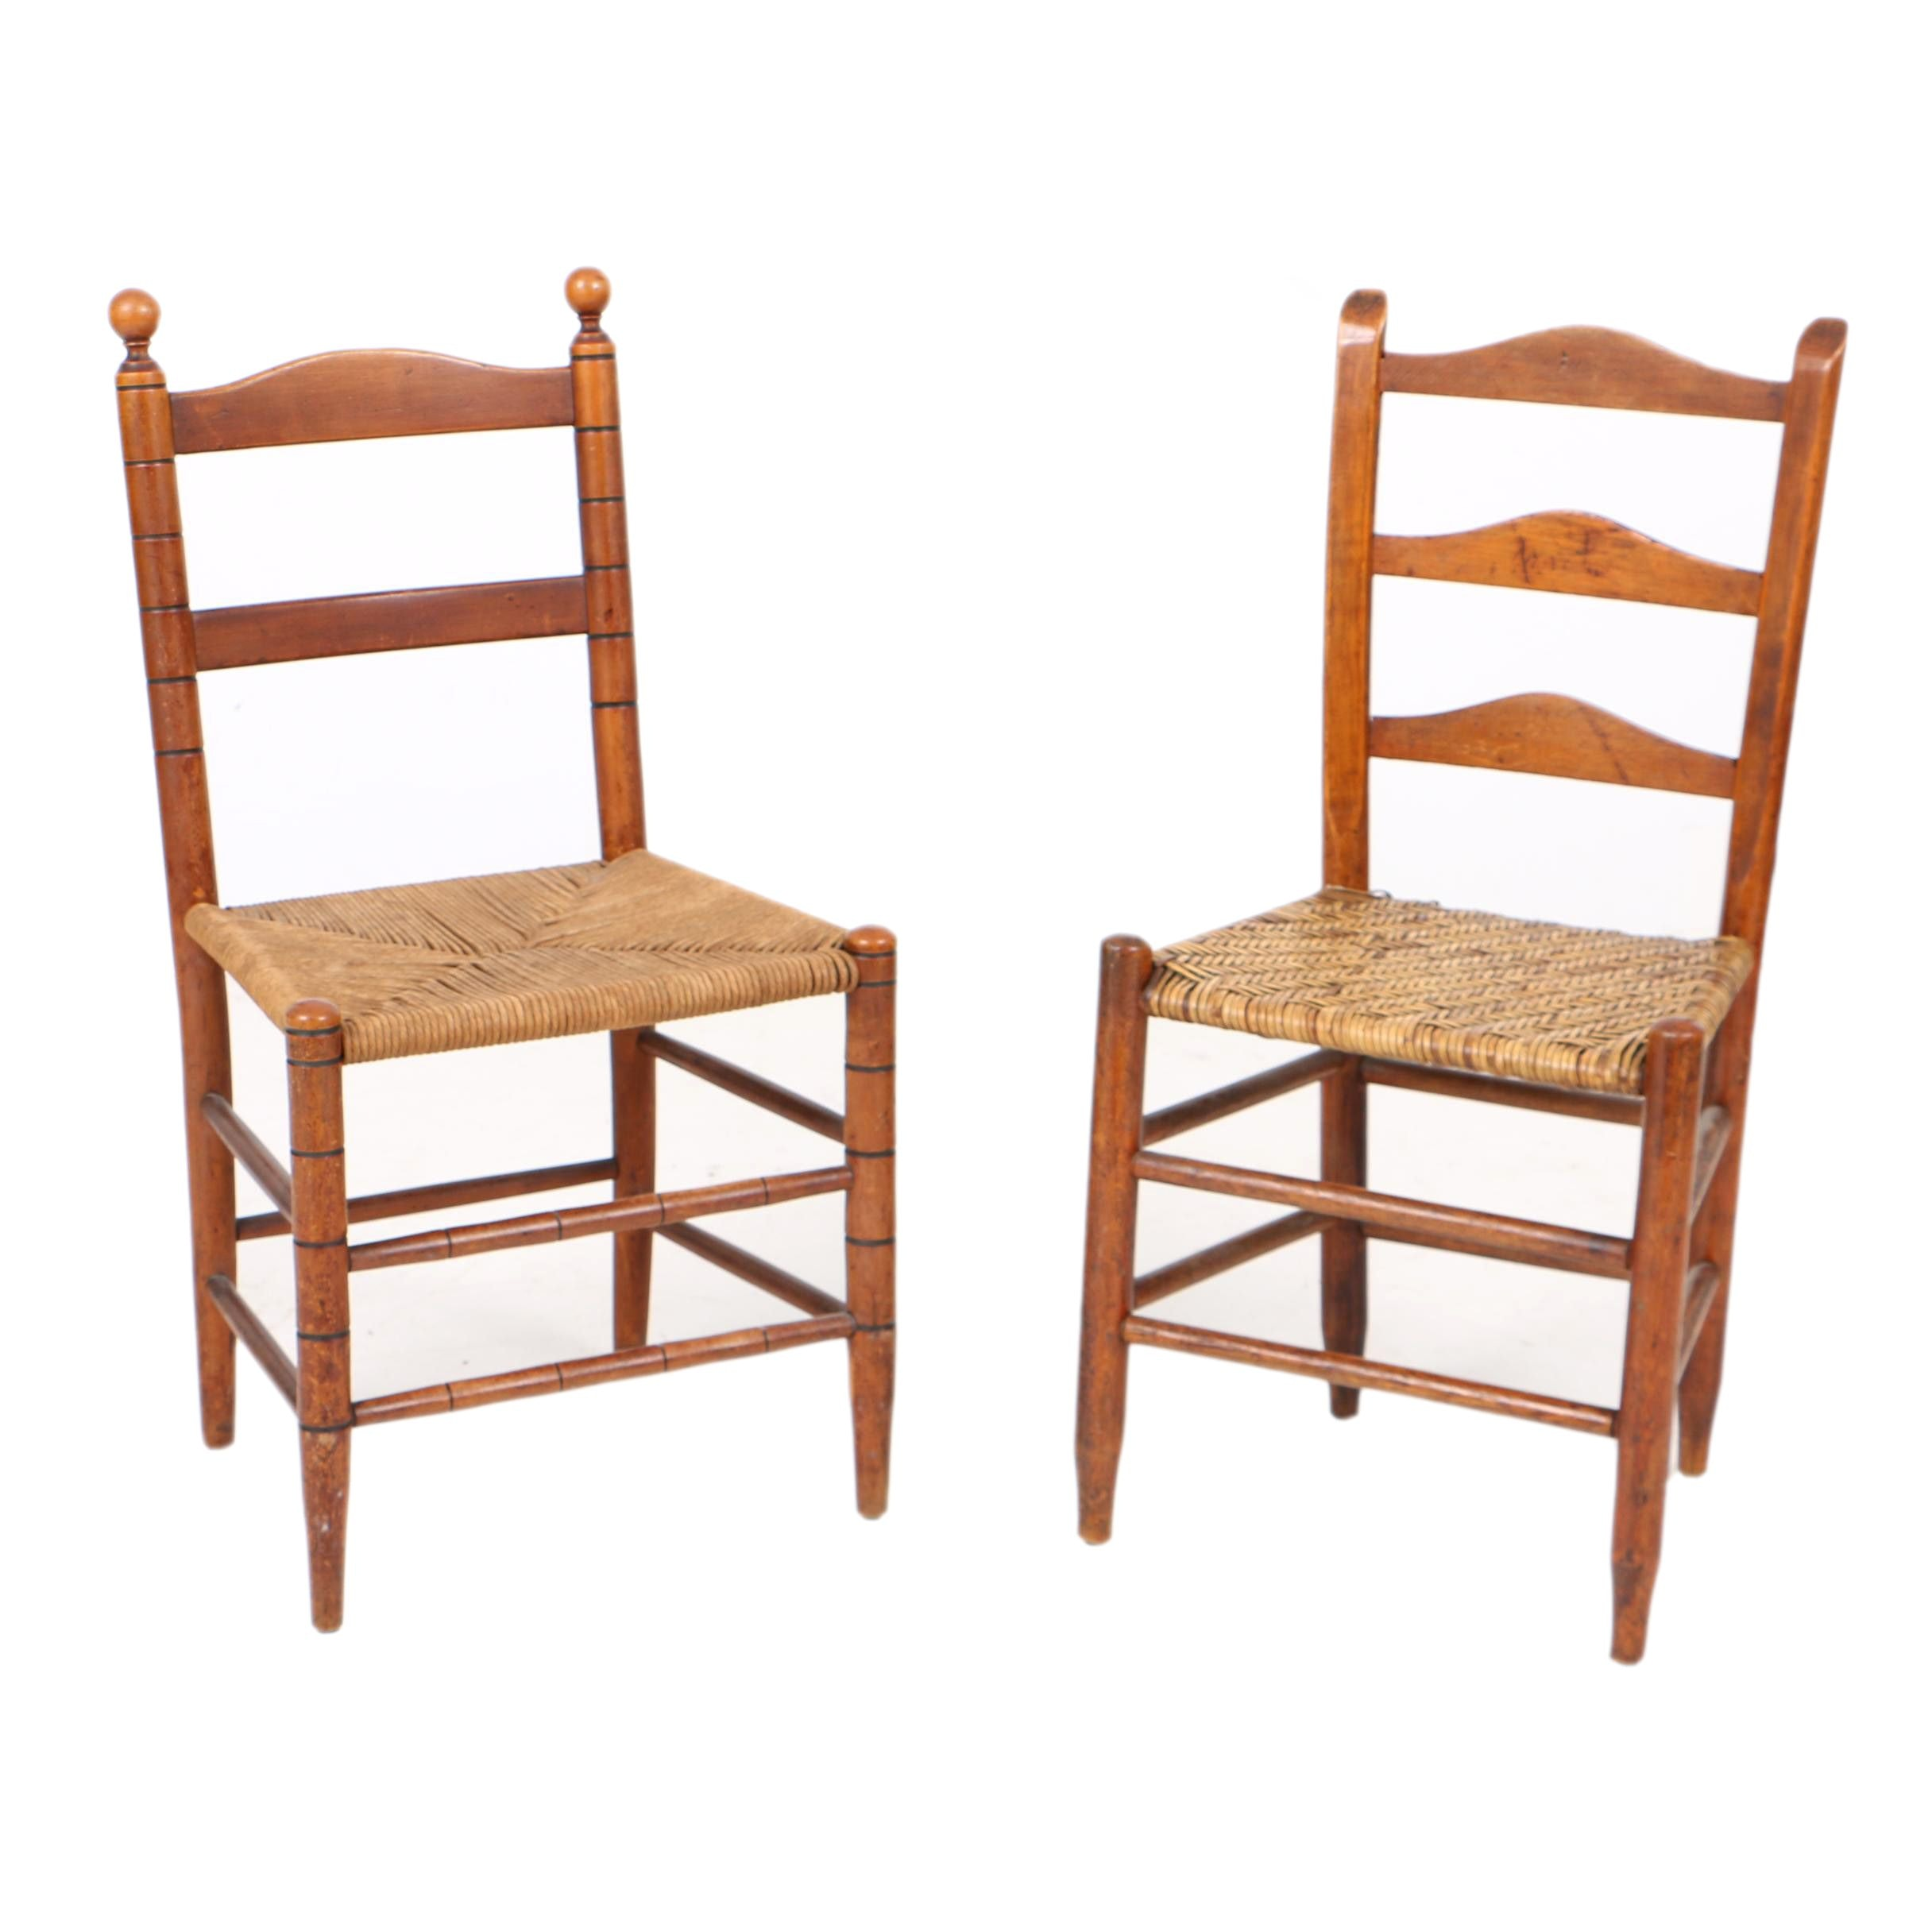 Antique Ladderback Side Chairs, 19th Century